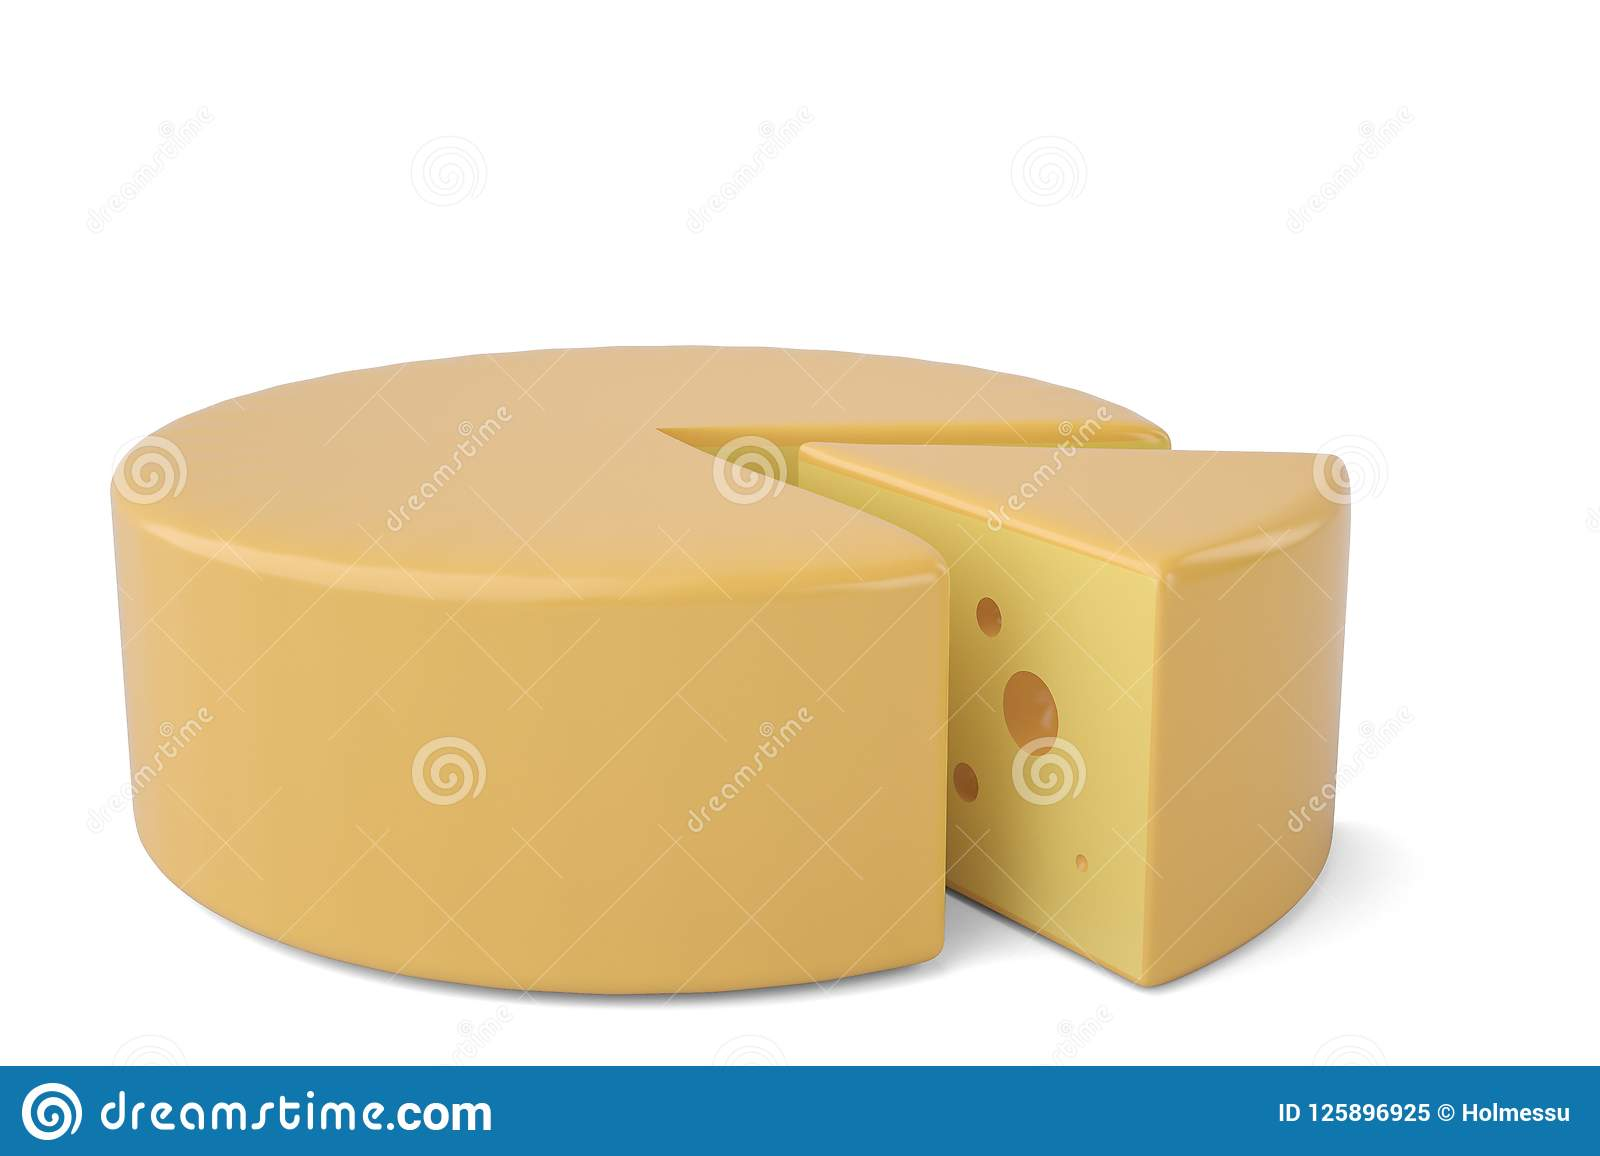 Triangular piece of cheese cheese icon.3D illustration.